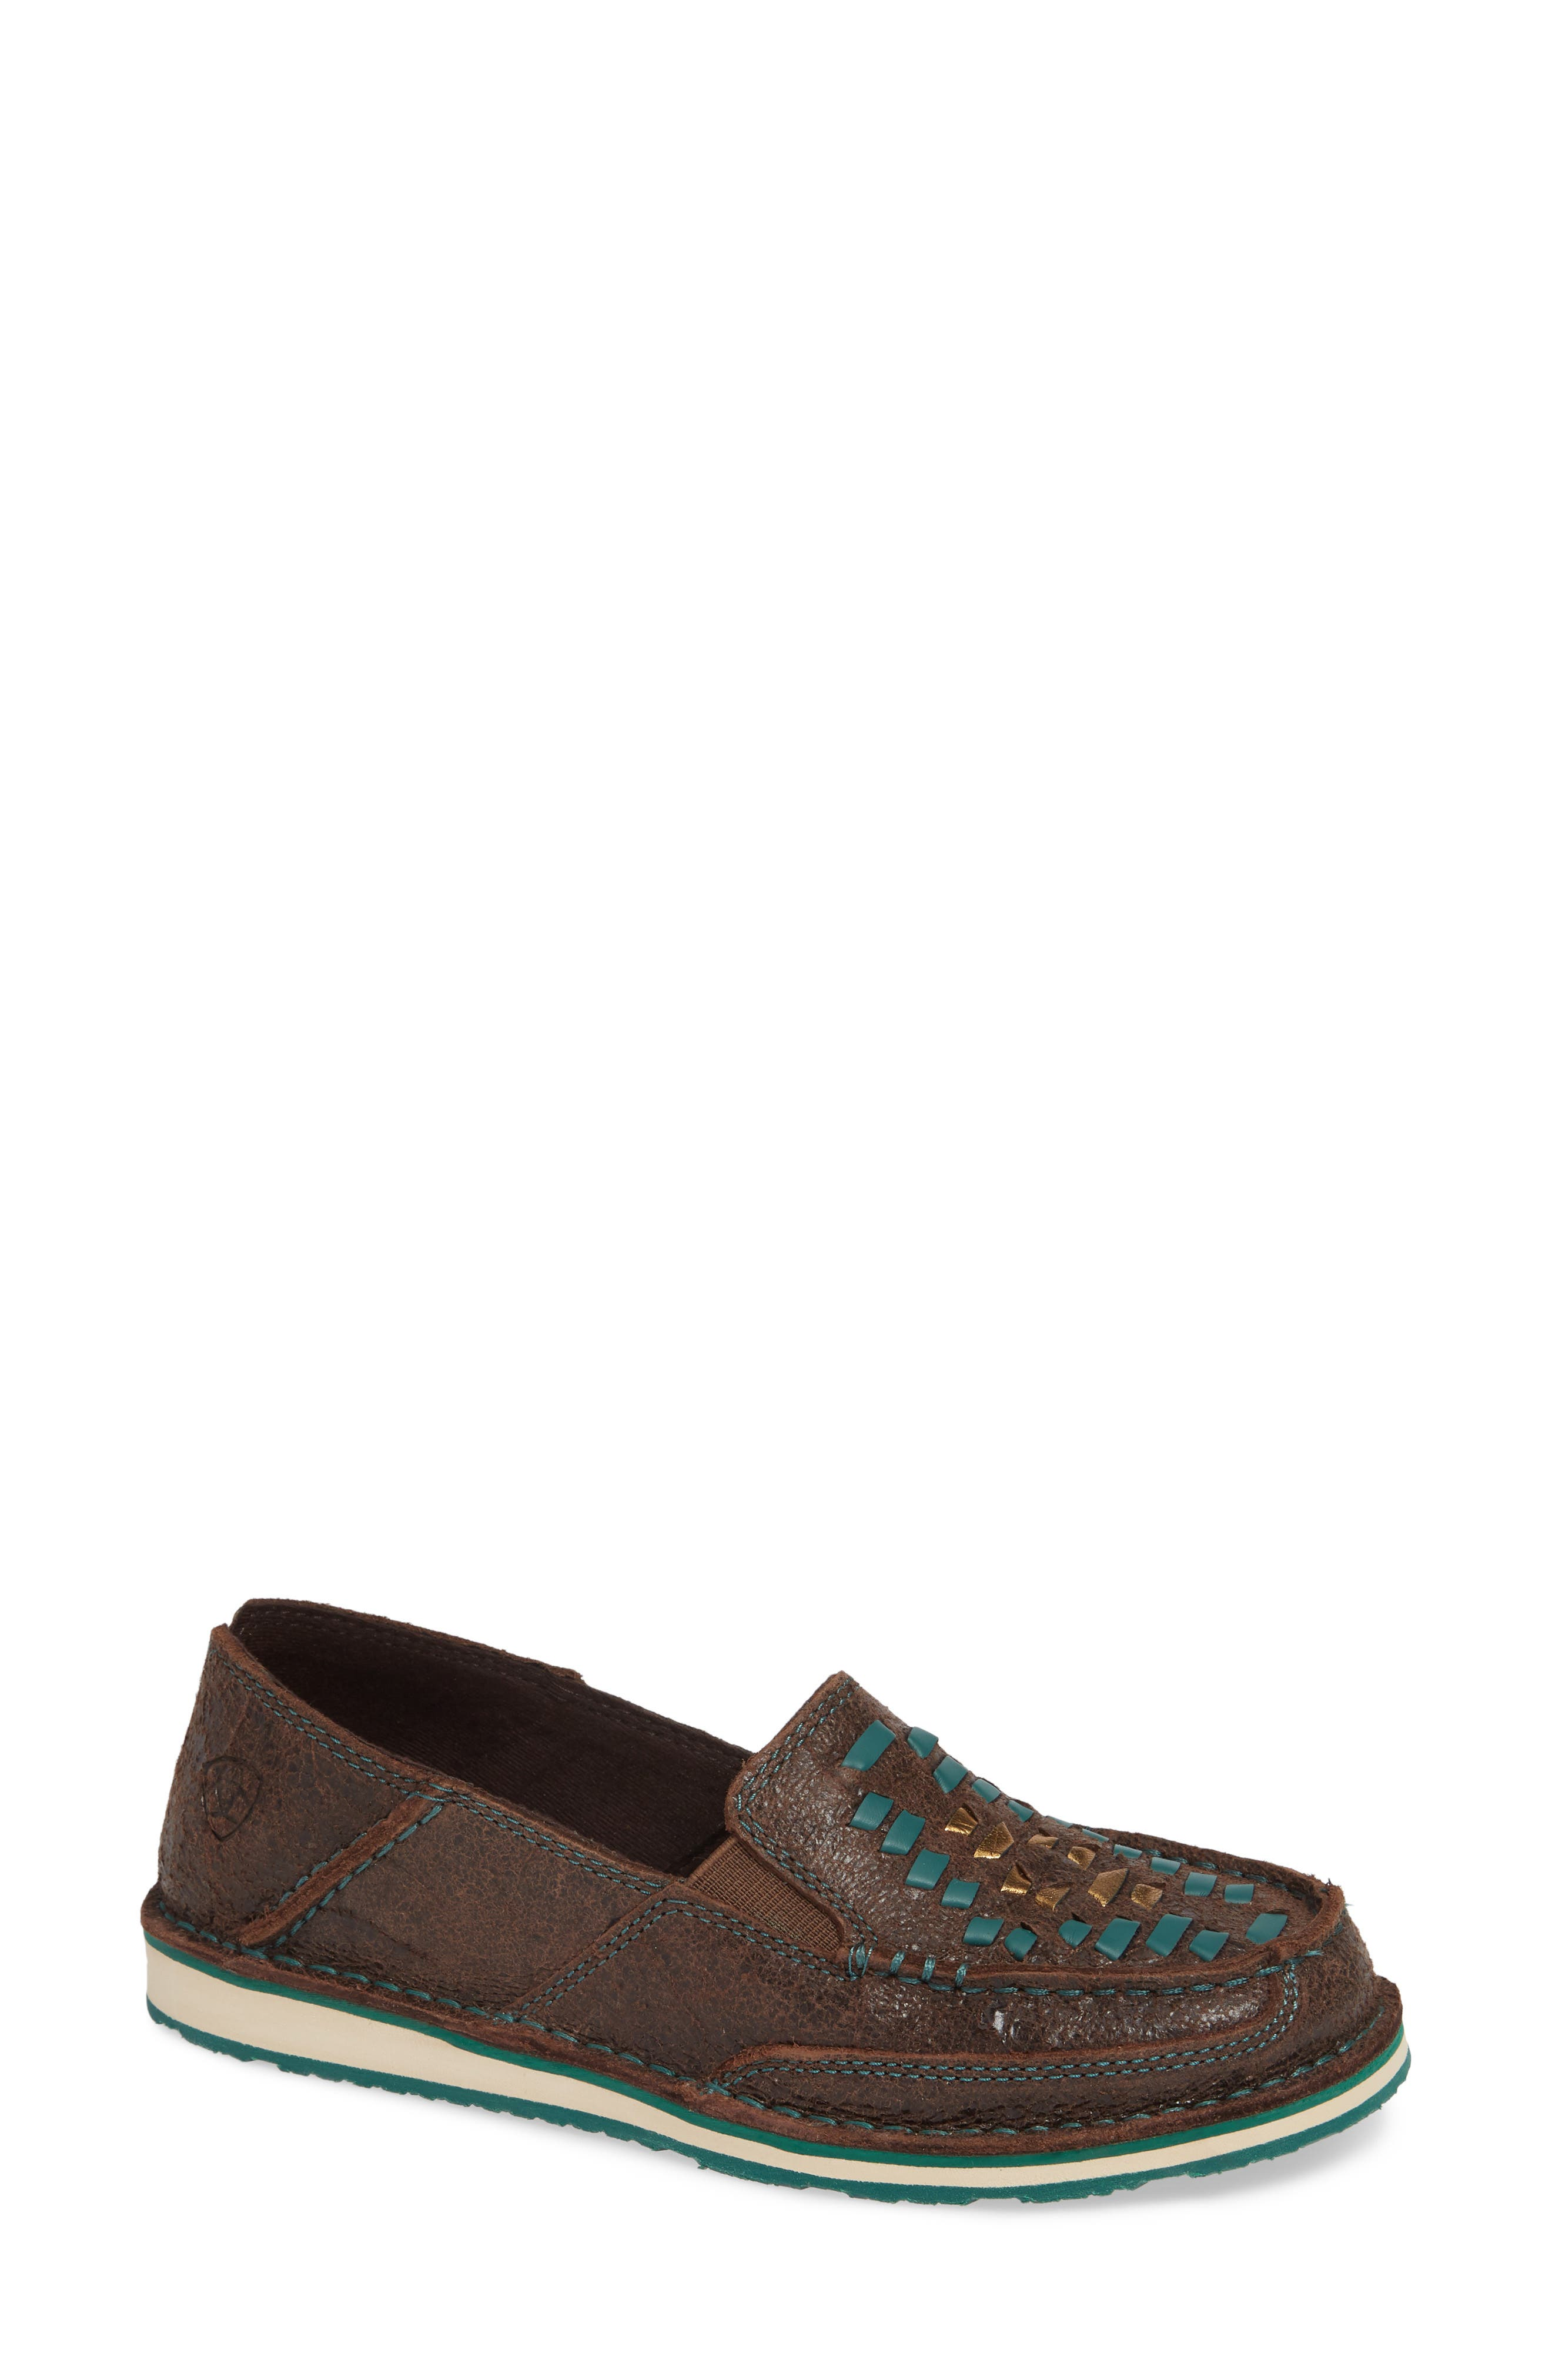 Cruiser Woven Loafer in Brown Rebel Leather